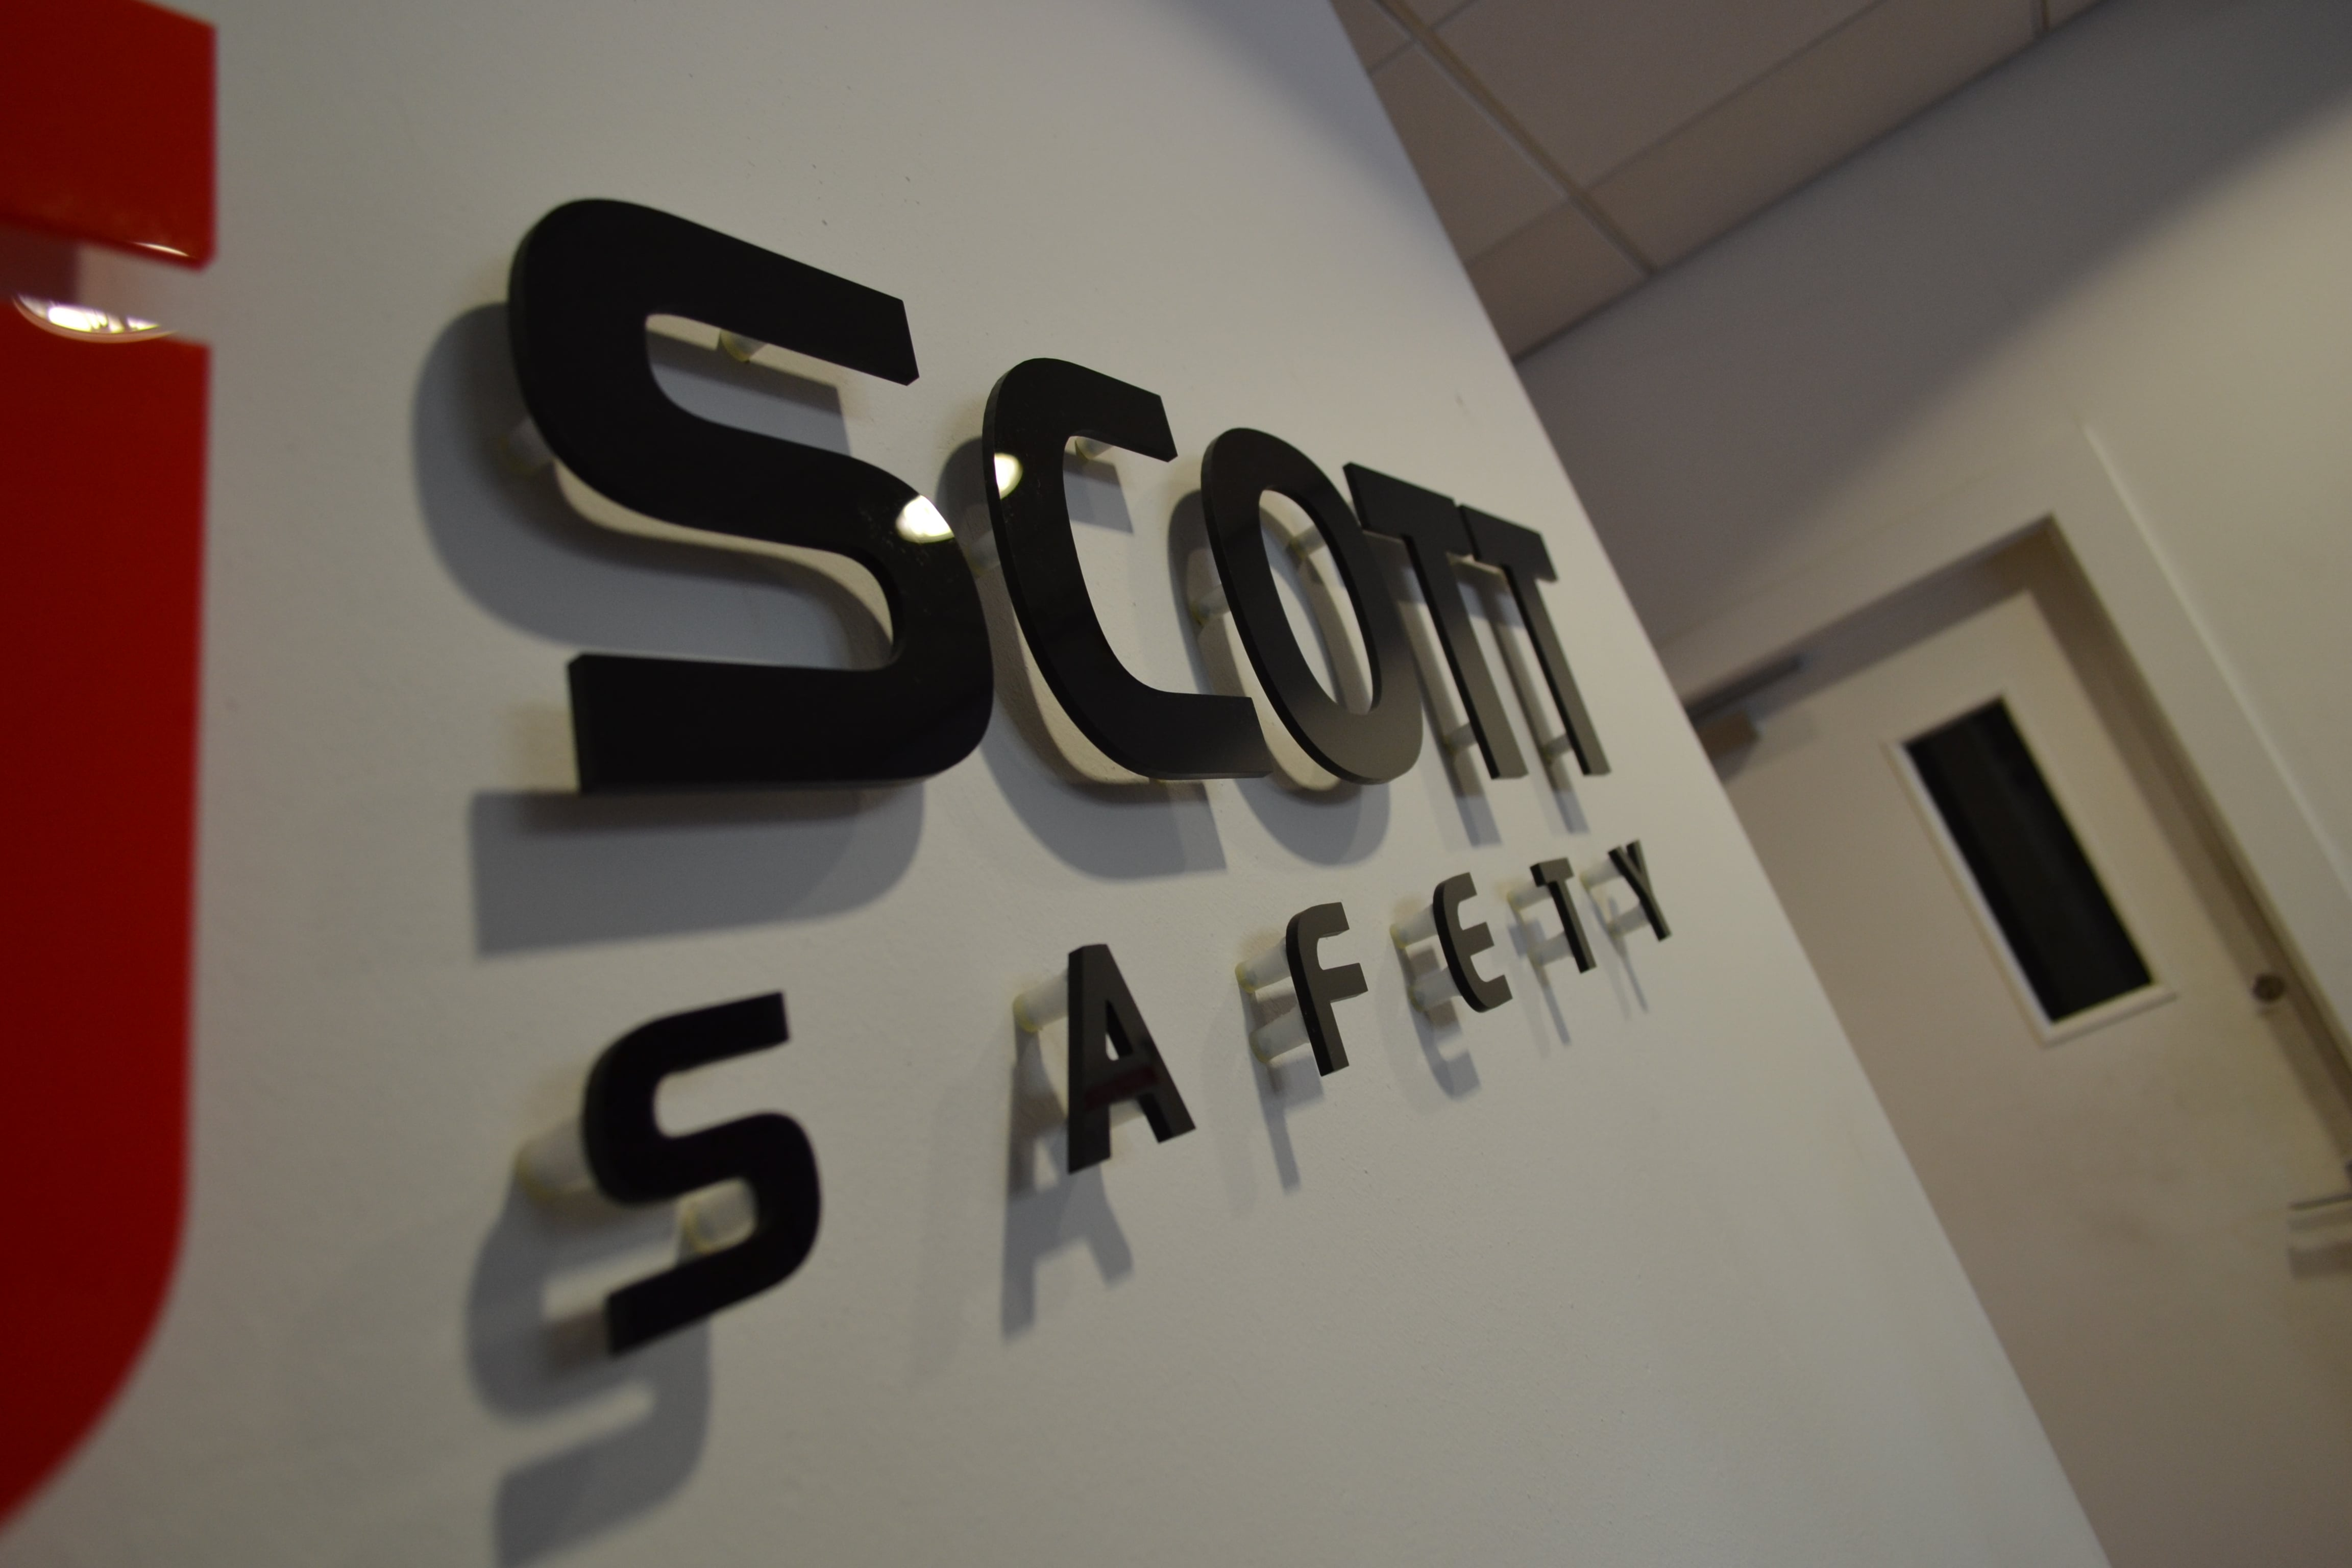 SCOTTS SAFETY FRET CUT LETTERS ON STAND OFF LOCATORS